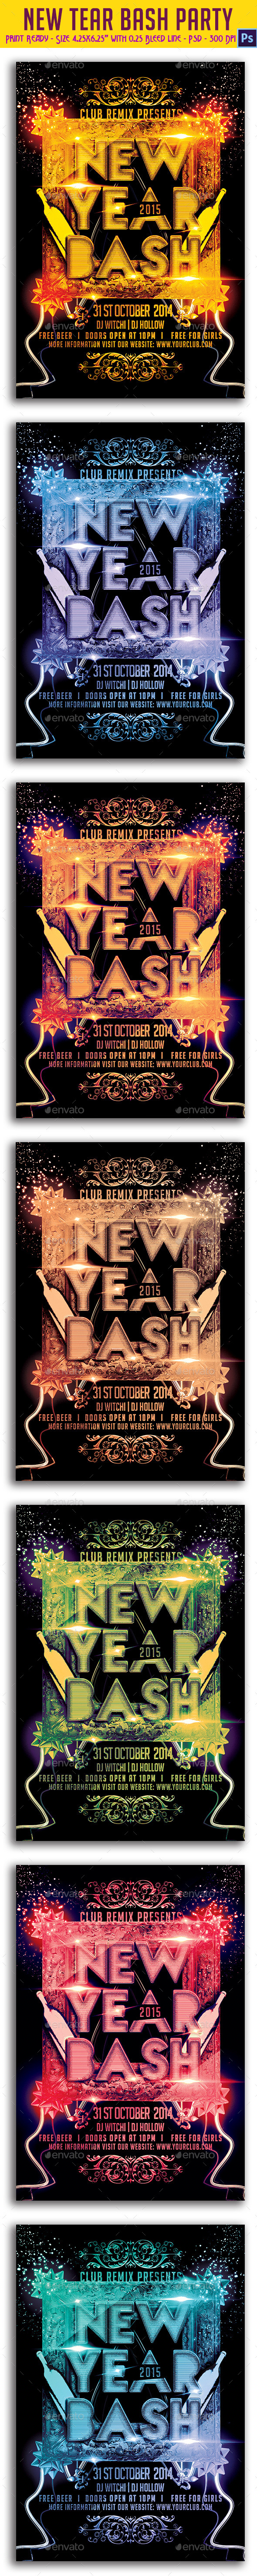 New Year Bash Party Flyer - Clubs & Parties Events